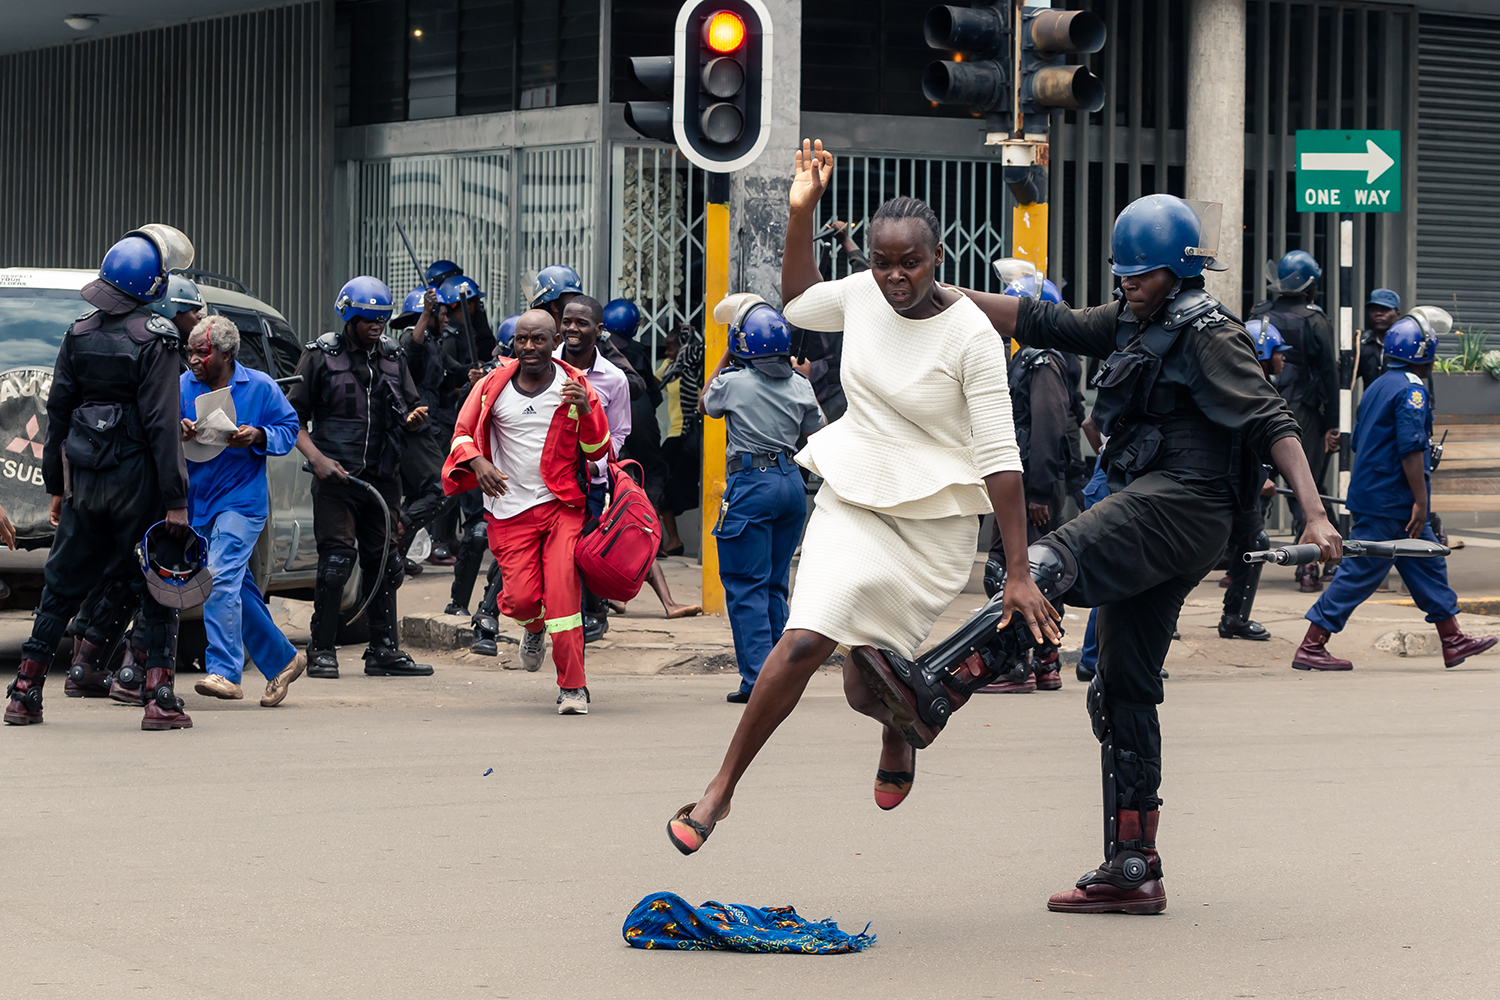 A Zimbabwe police officer tackles a woman with his boot as police disperse a crowd gathered to hear an address by Nelson Chamisa, the leader of the Movement for Democratic Change at Morgan Tsvangirai House, the party headquarters, in Harare on Nov. 20. JEKESAI NJIKIZANA/AFP via Getty Images